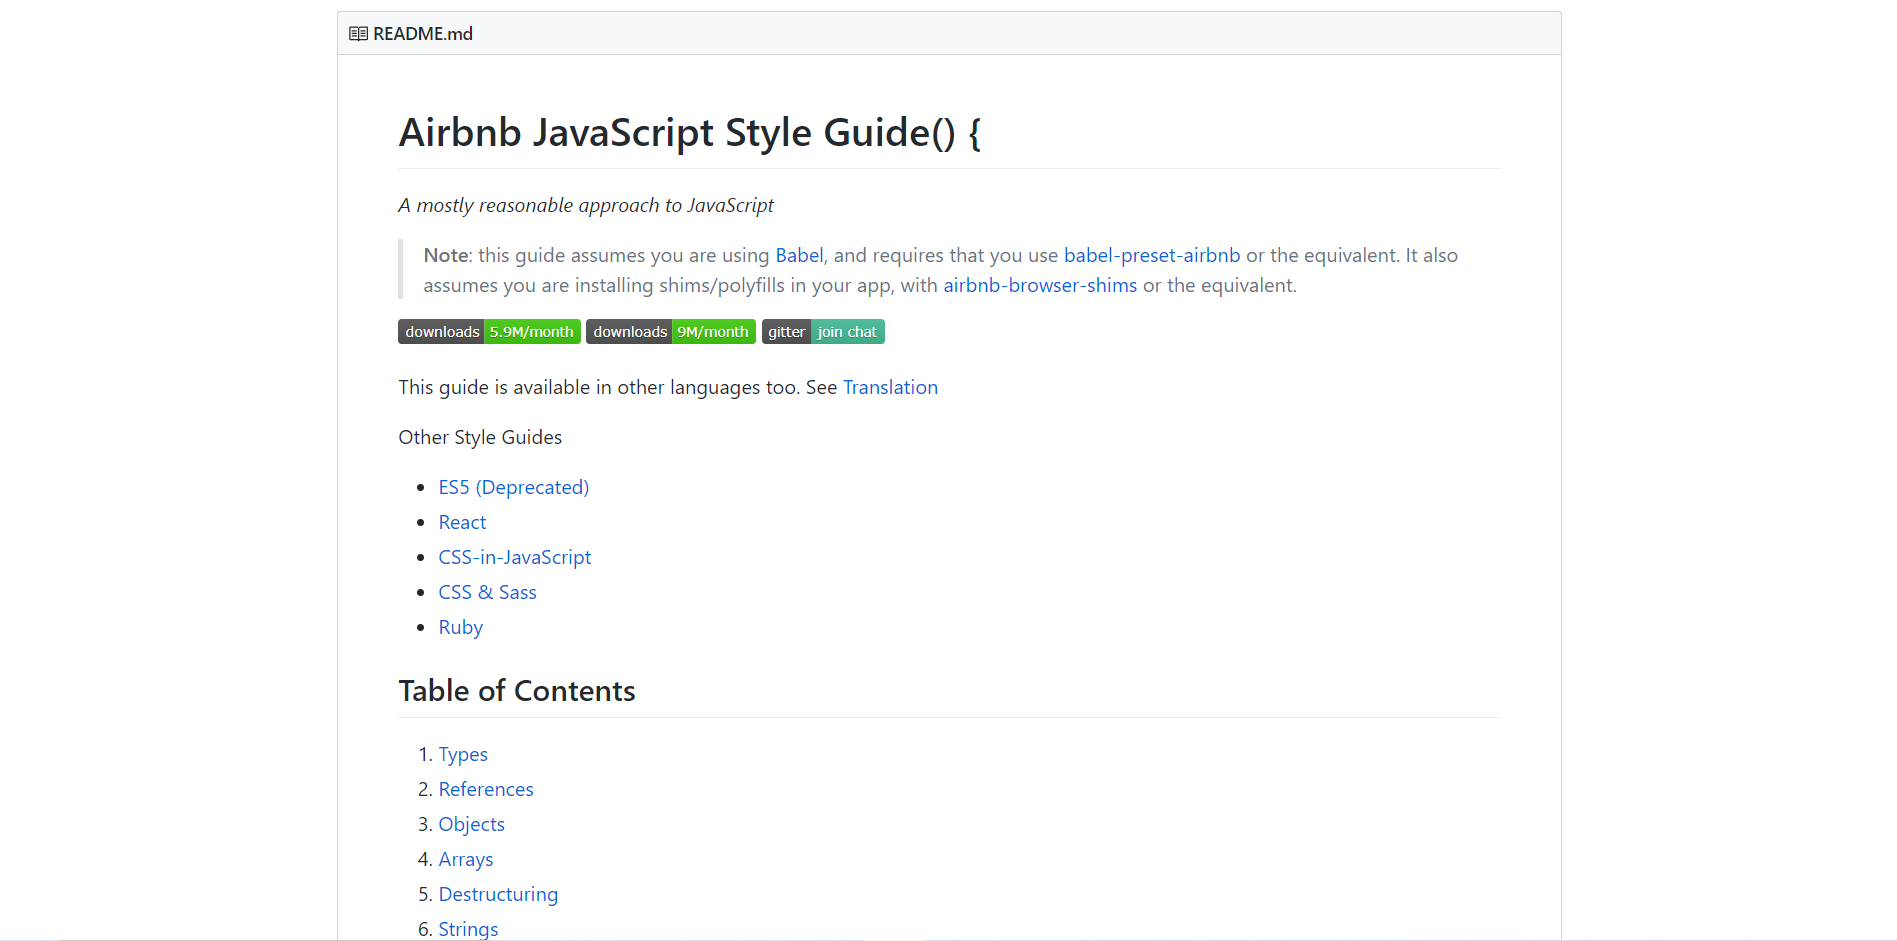 Airbnb JS style guide README